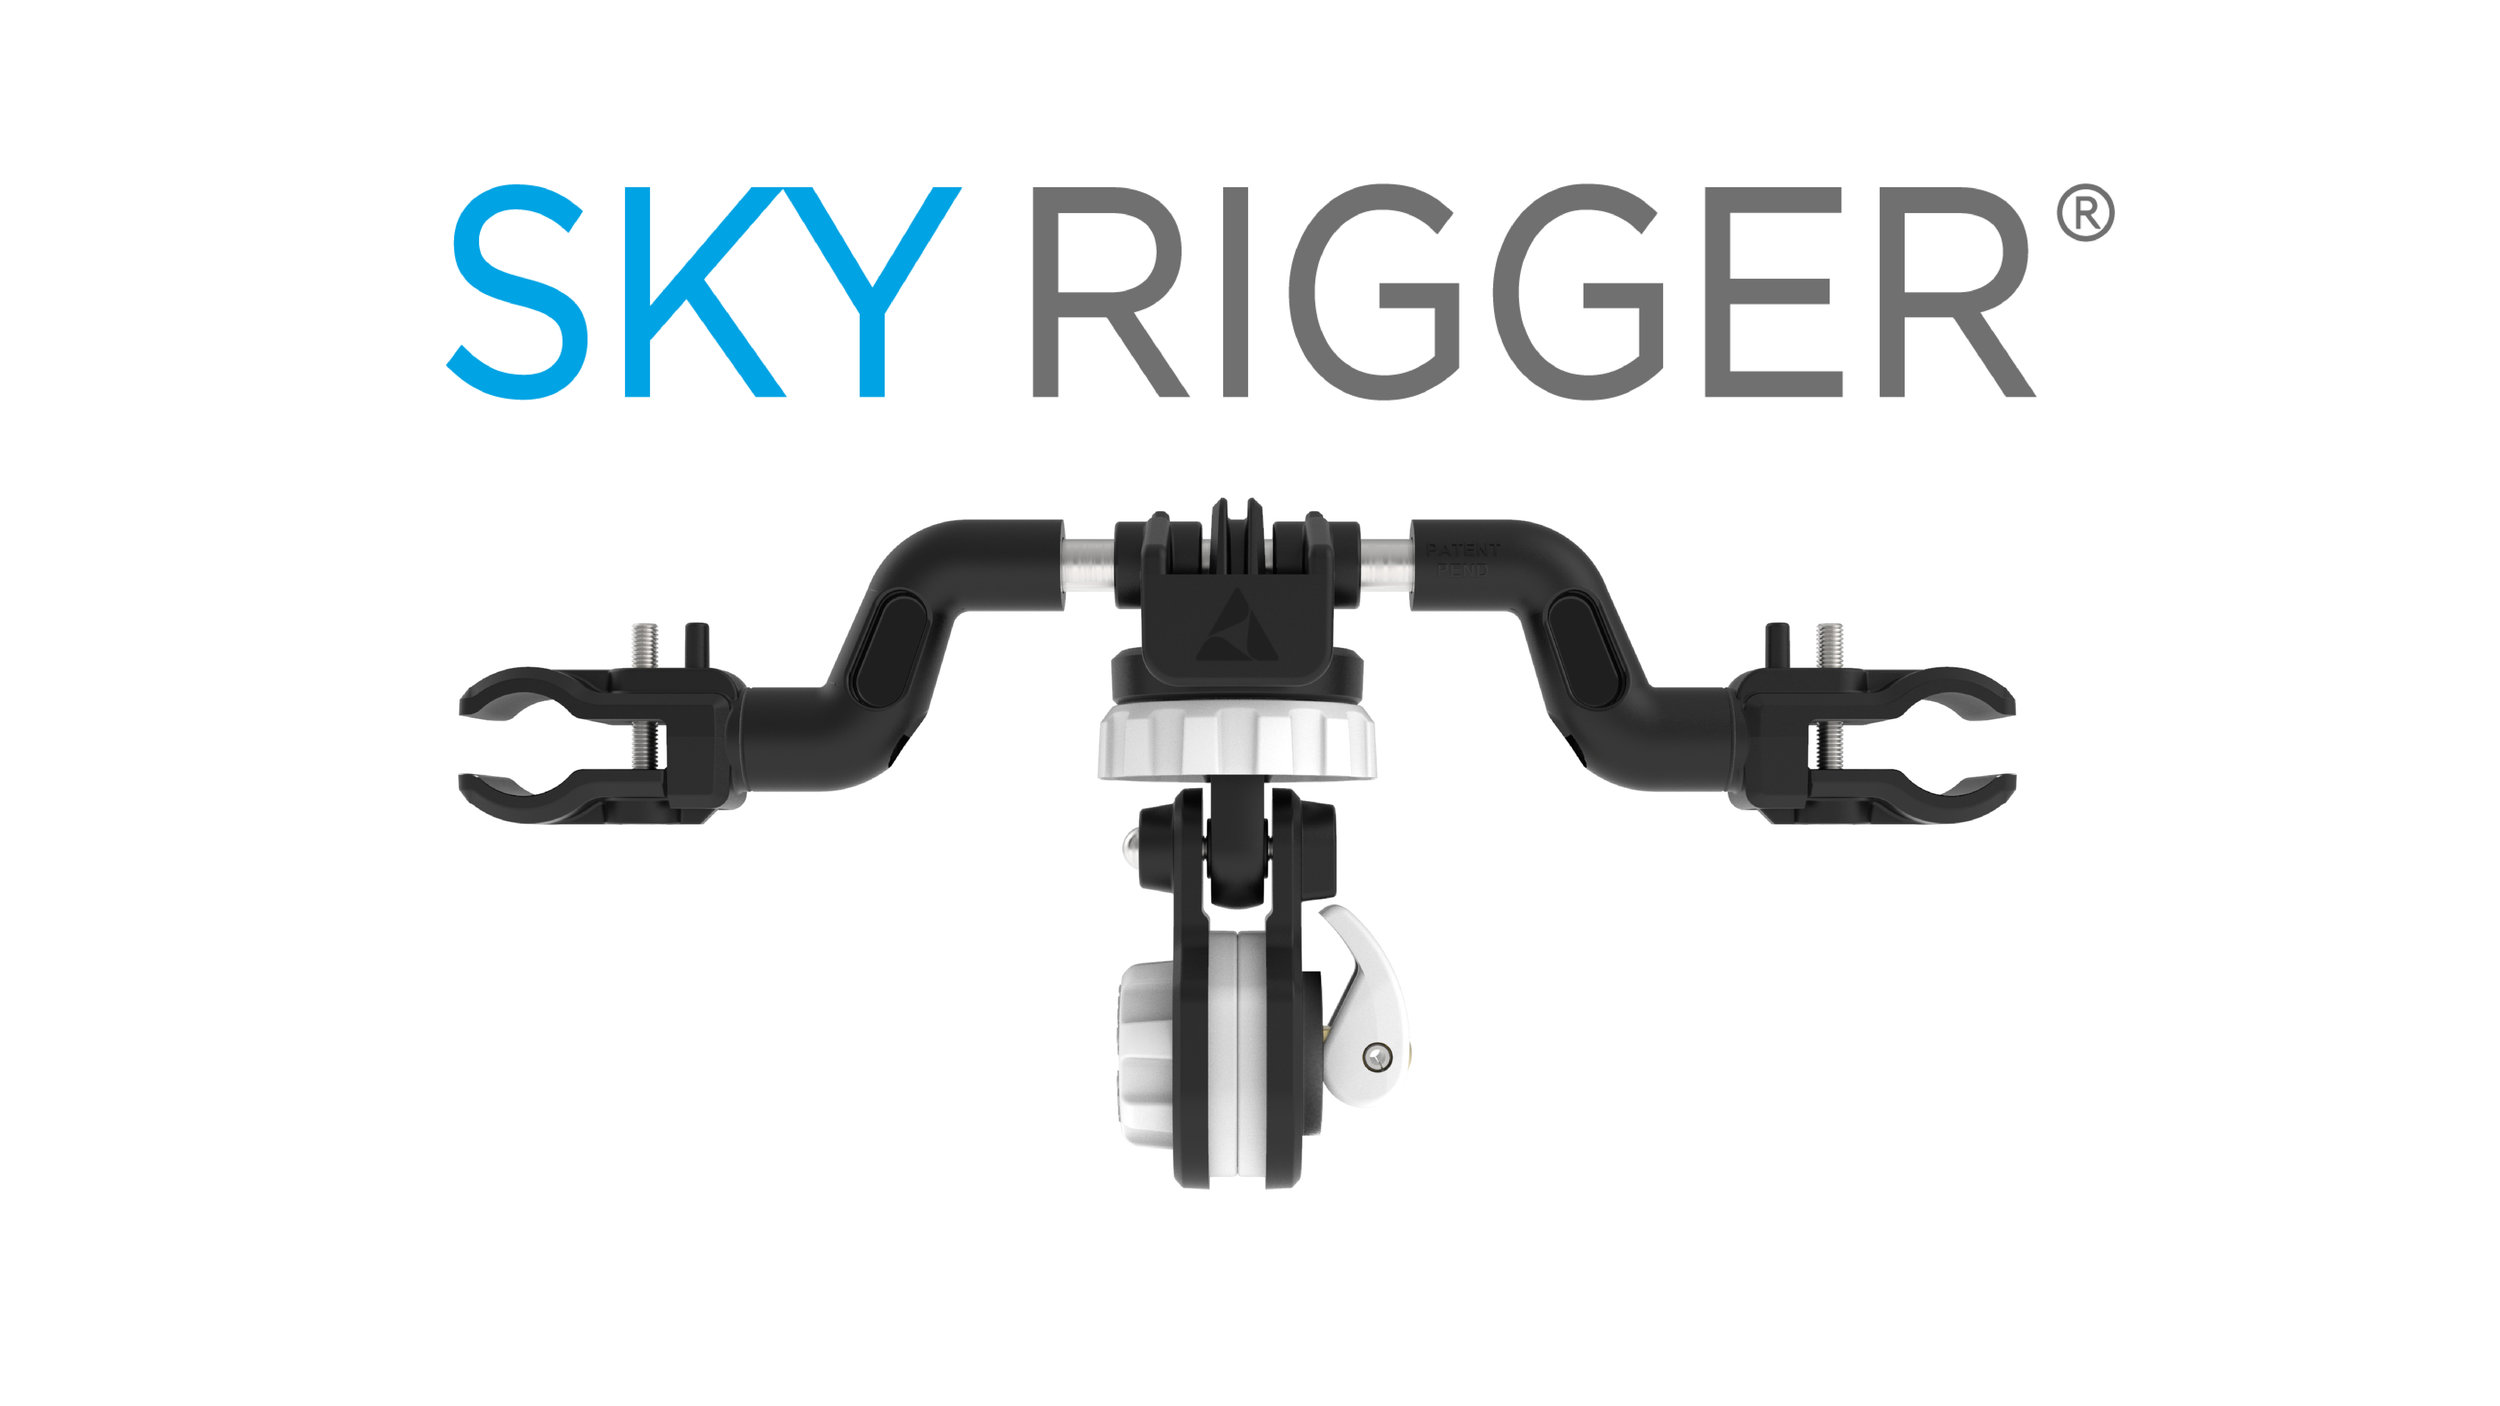 THE SKYRIGGER UNIT